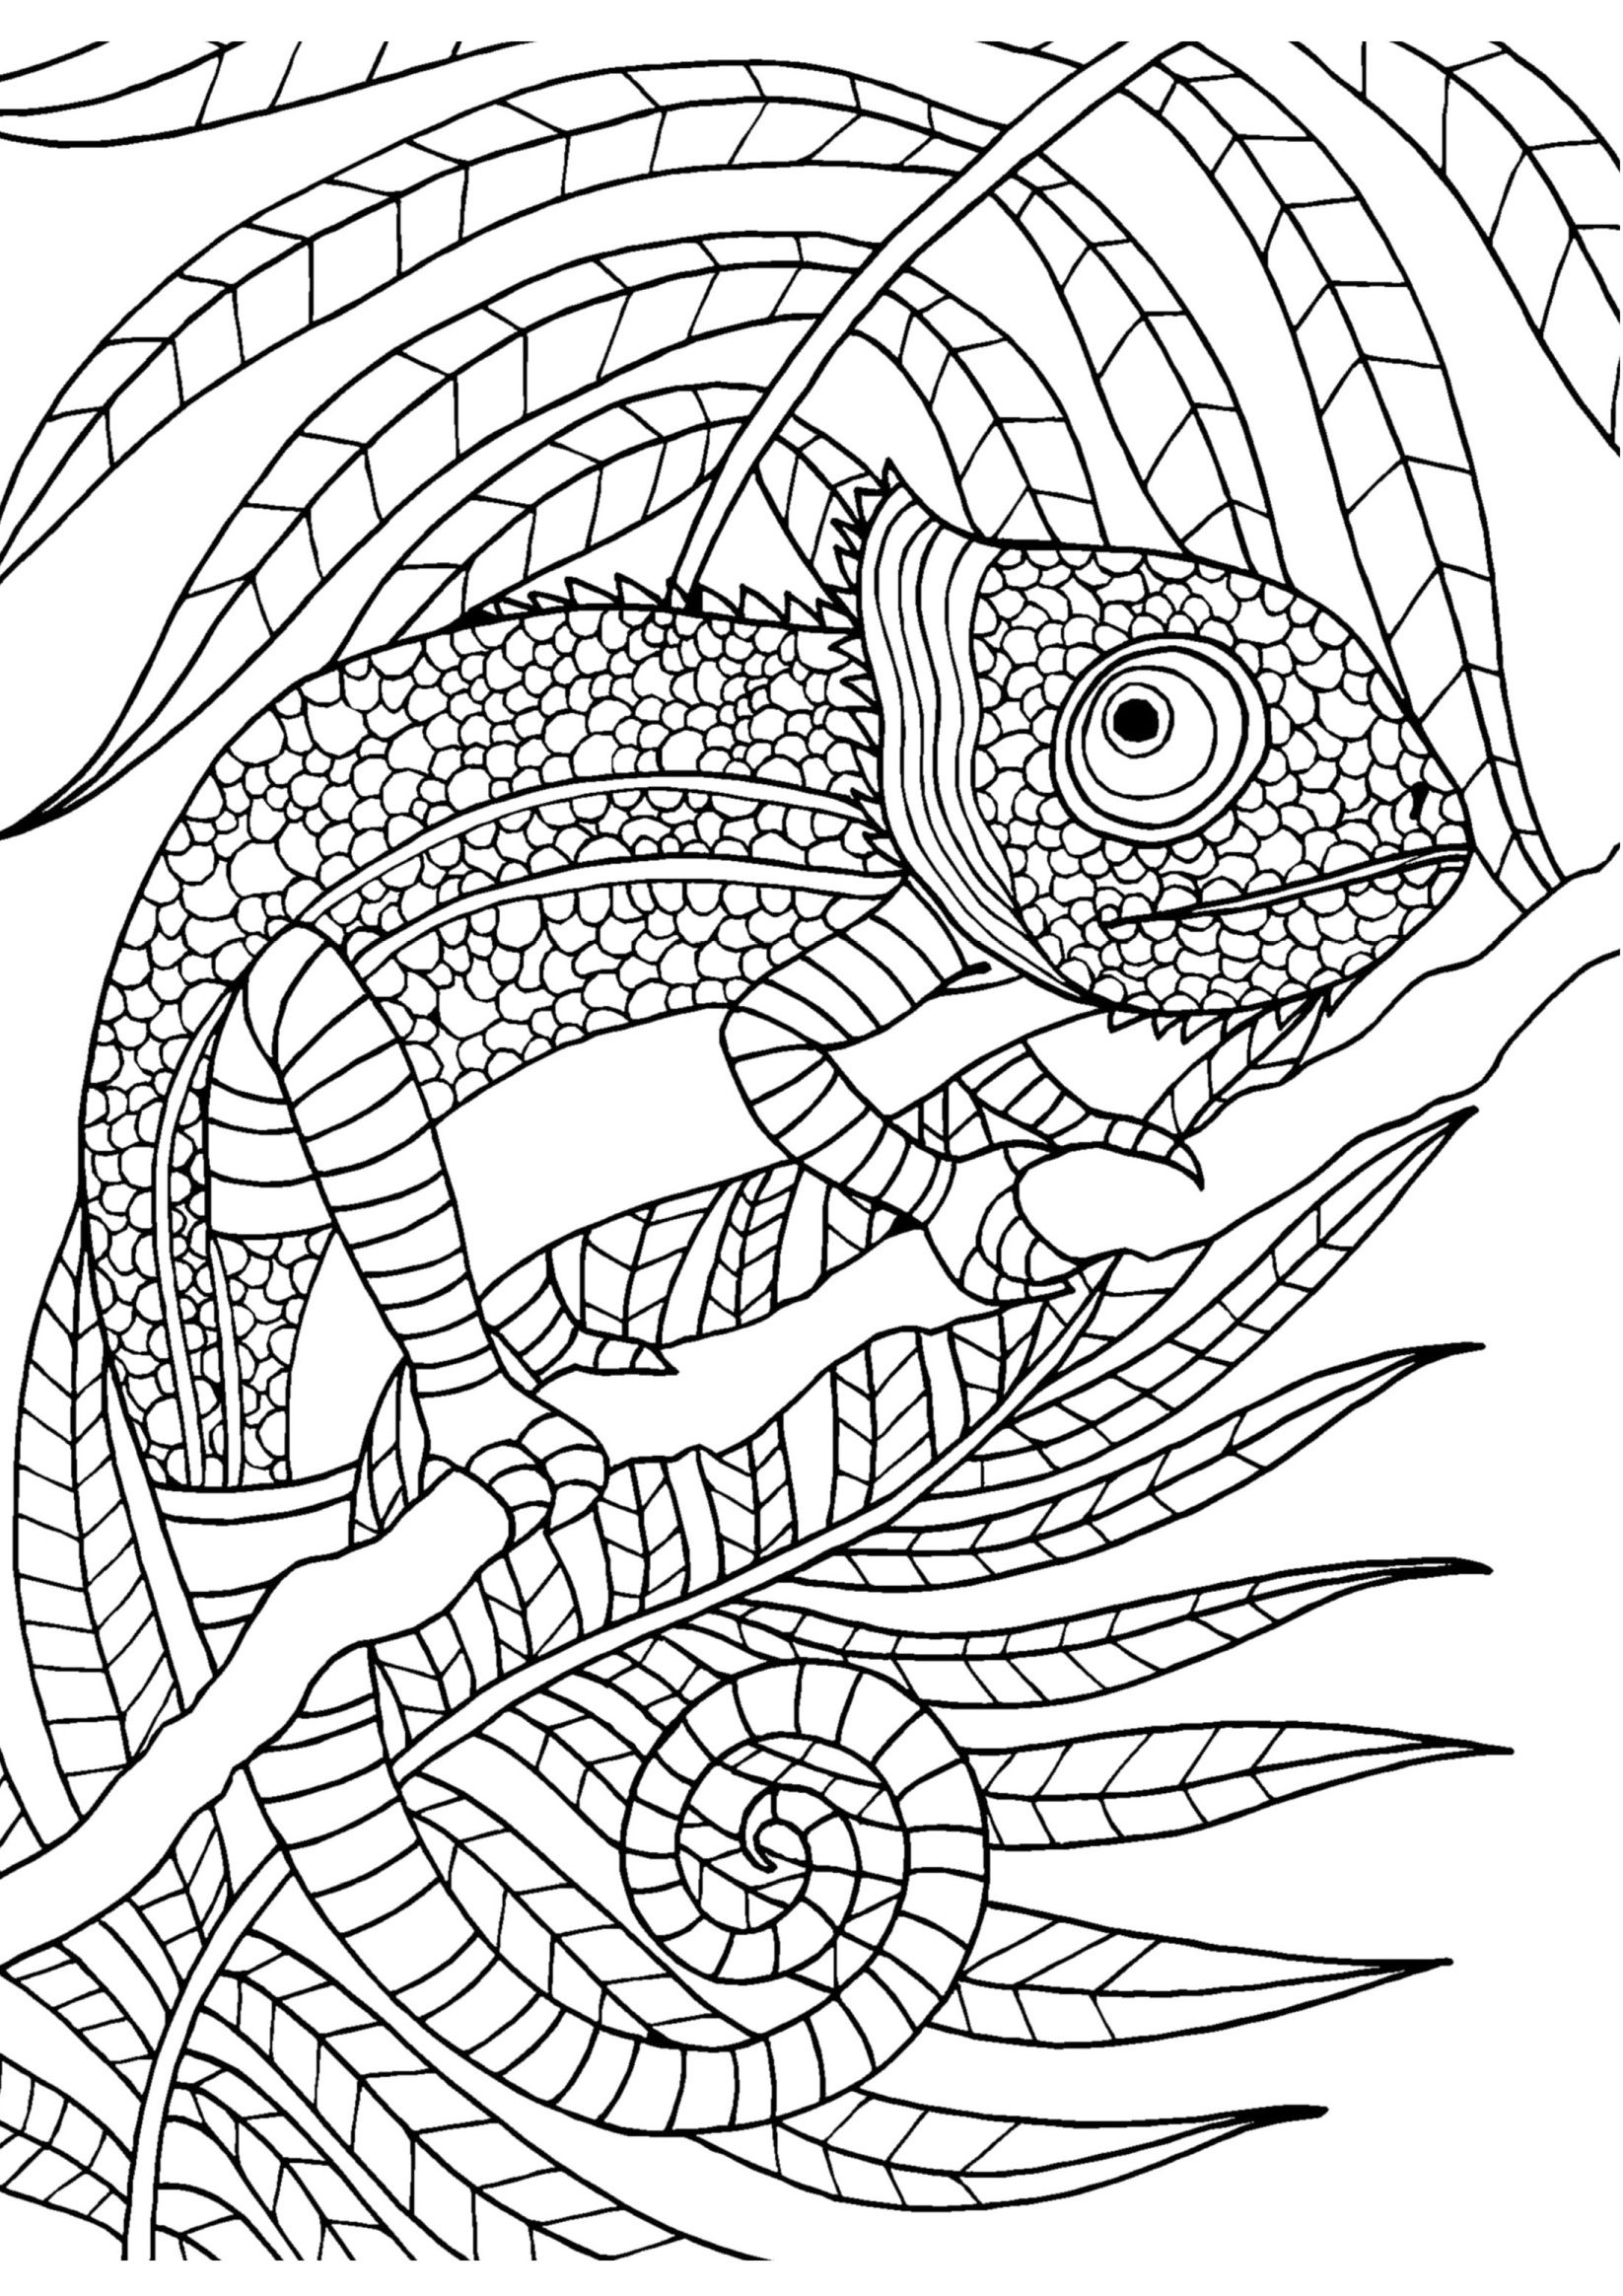 Chameleon adult colouring page Colouring In Sheets Art